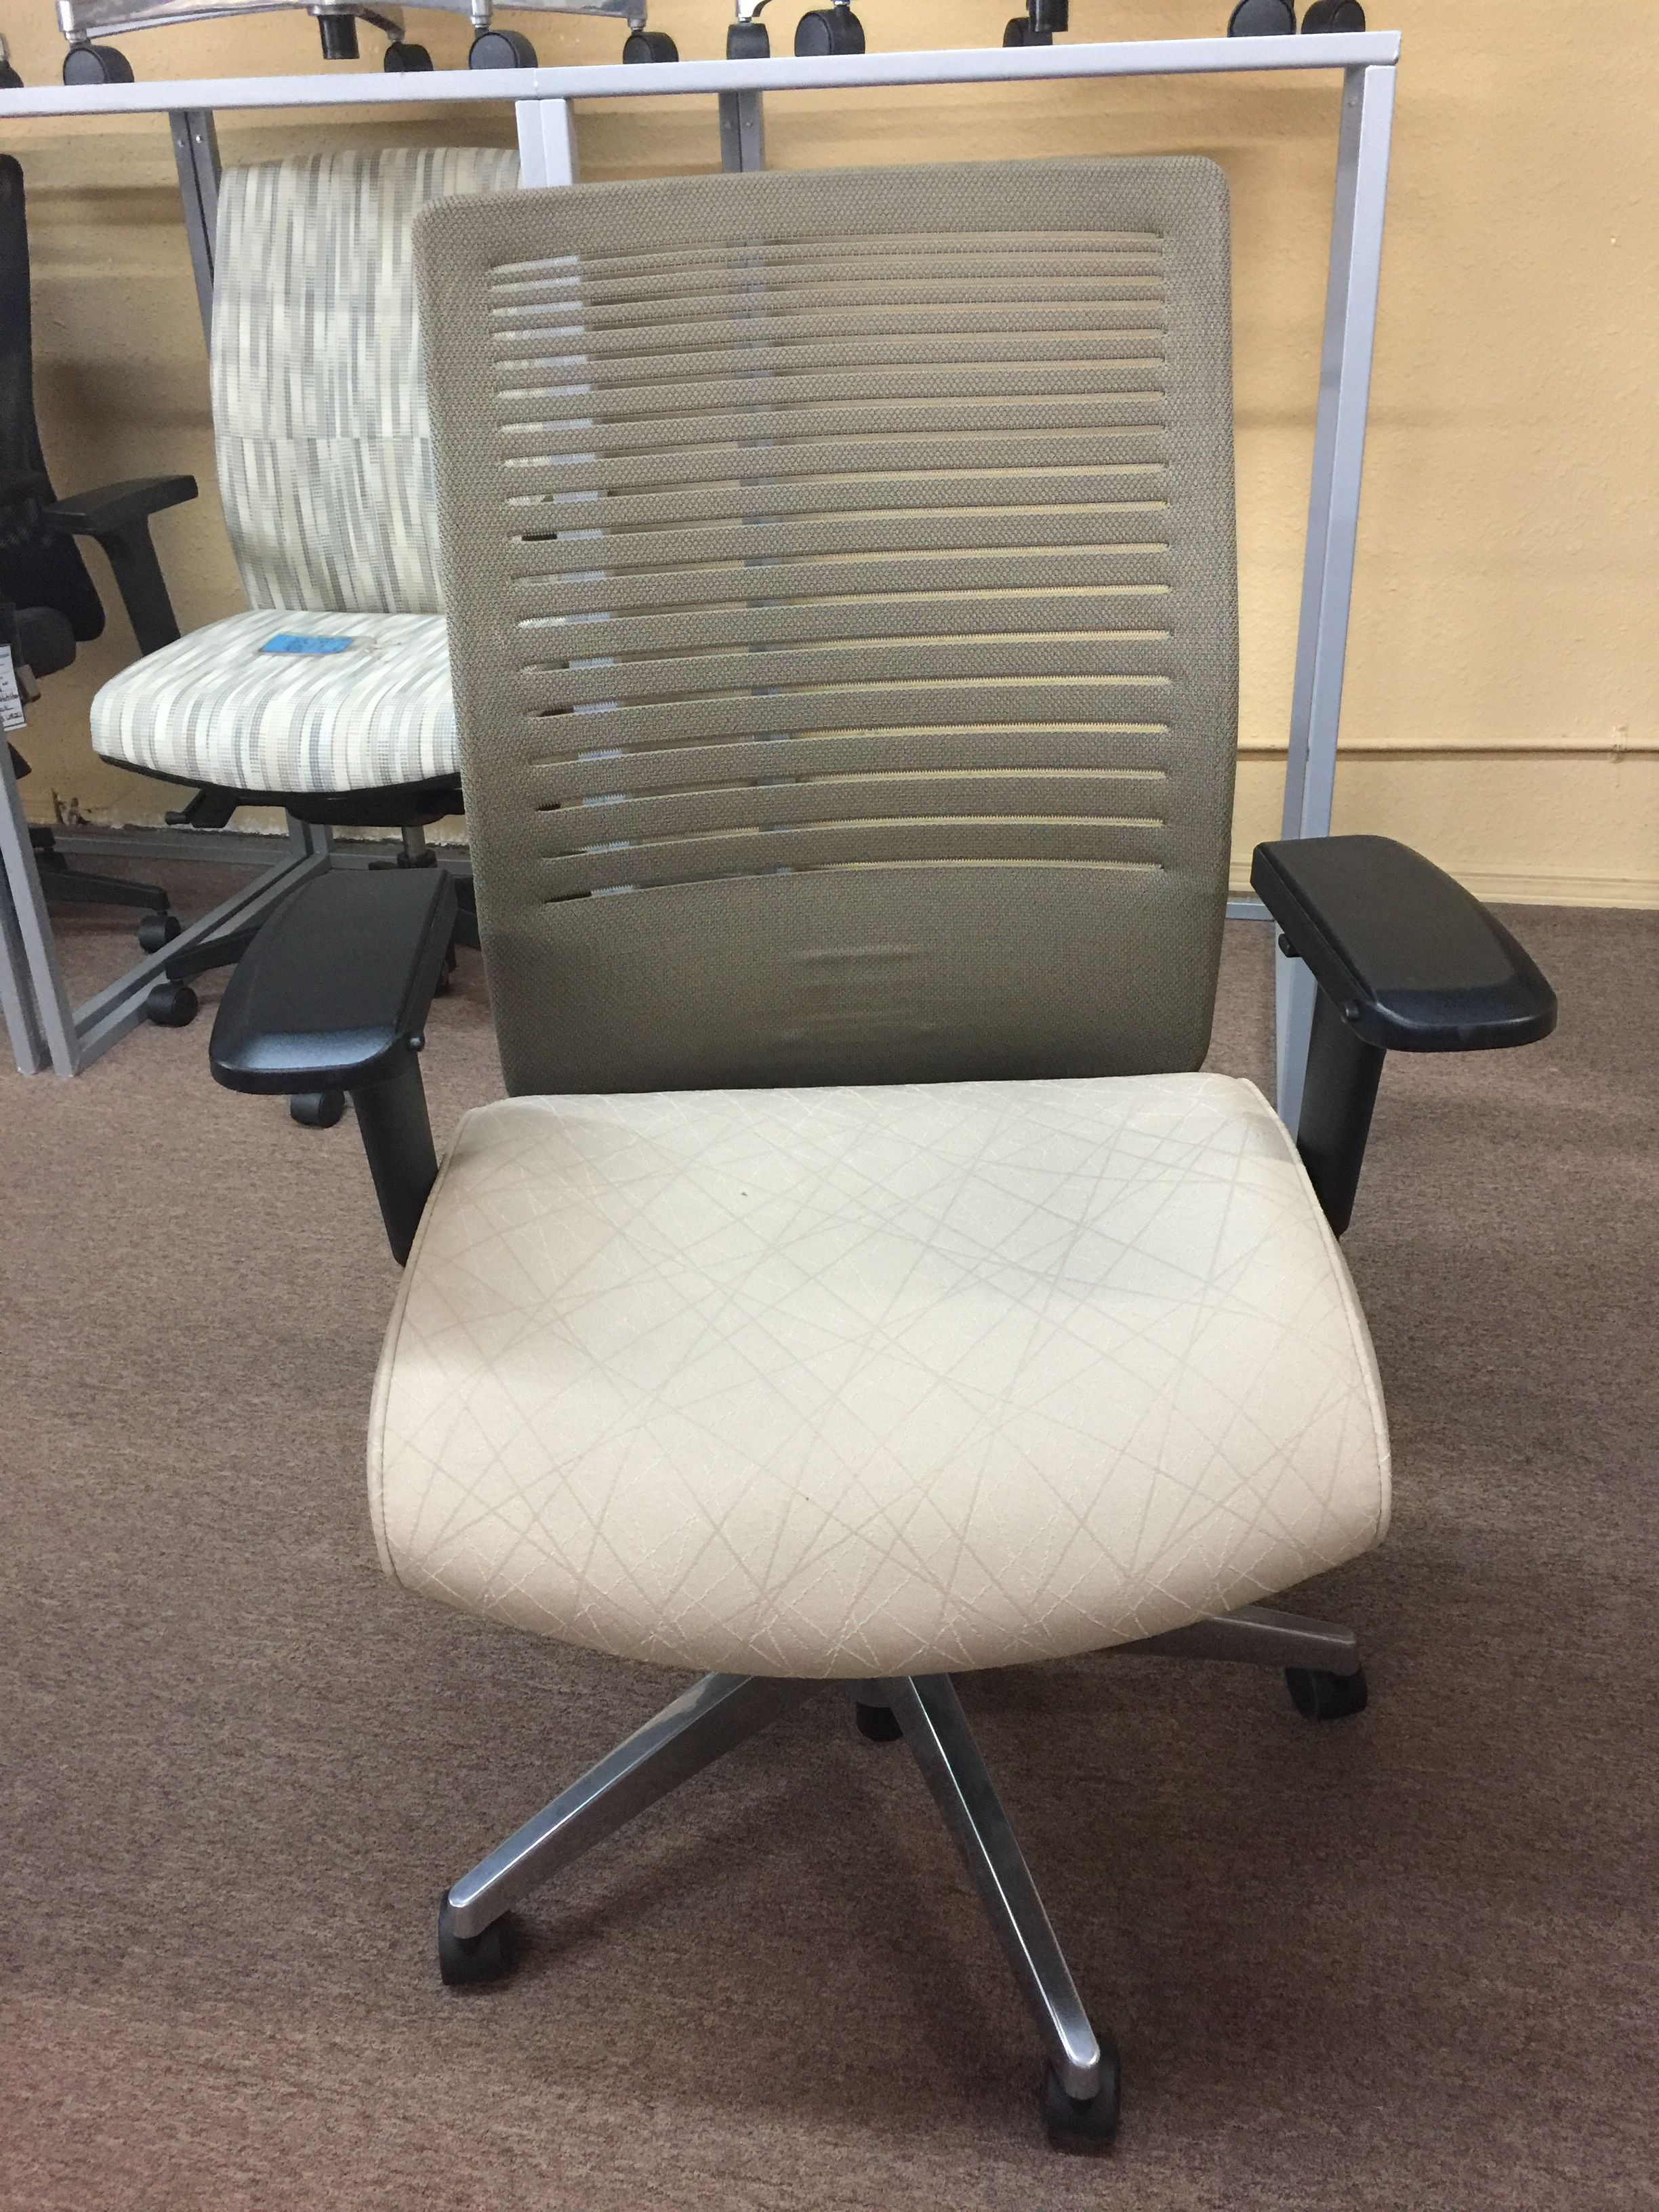 Showroom Chairs One Of A Kind Up To 80 Off List Price 727 561